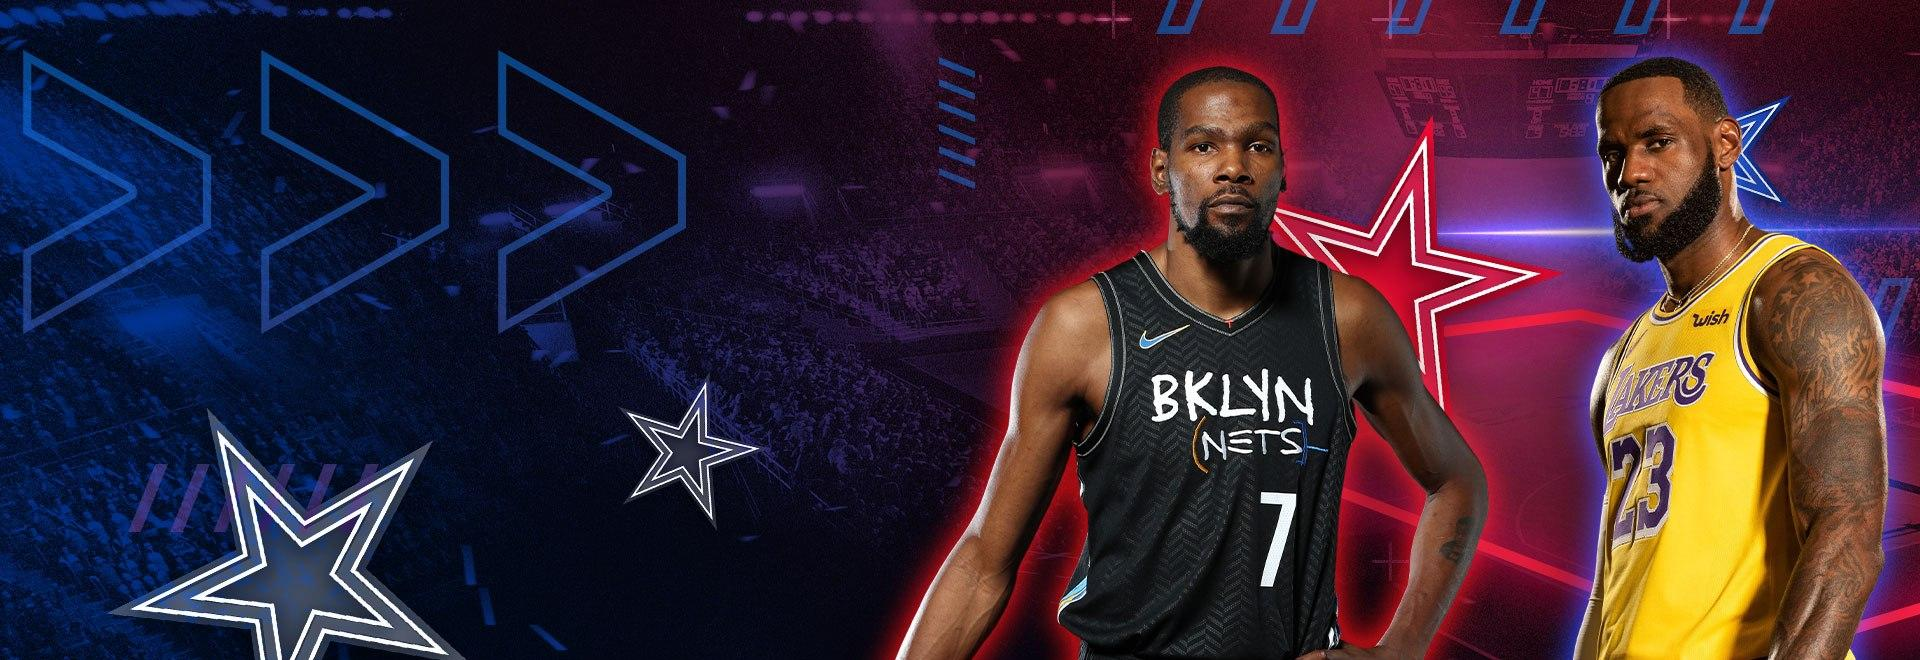 All Star Night Skills Challenge & Three Point Contest